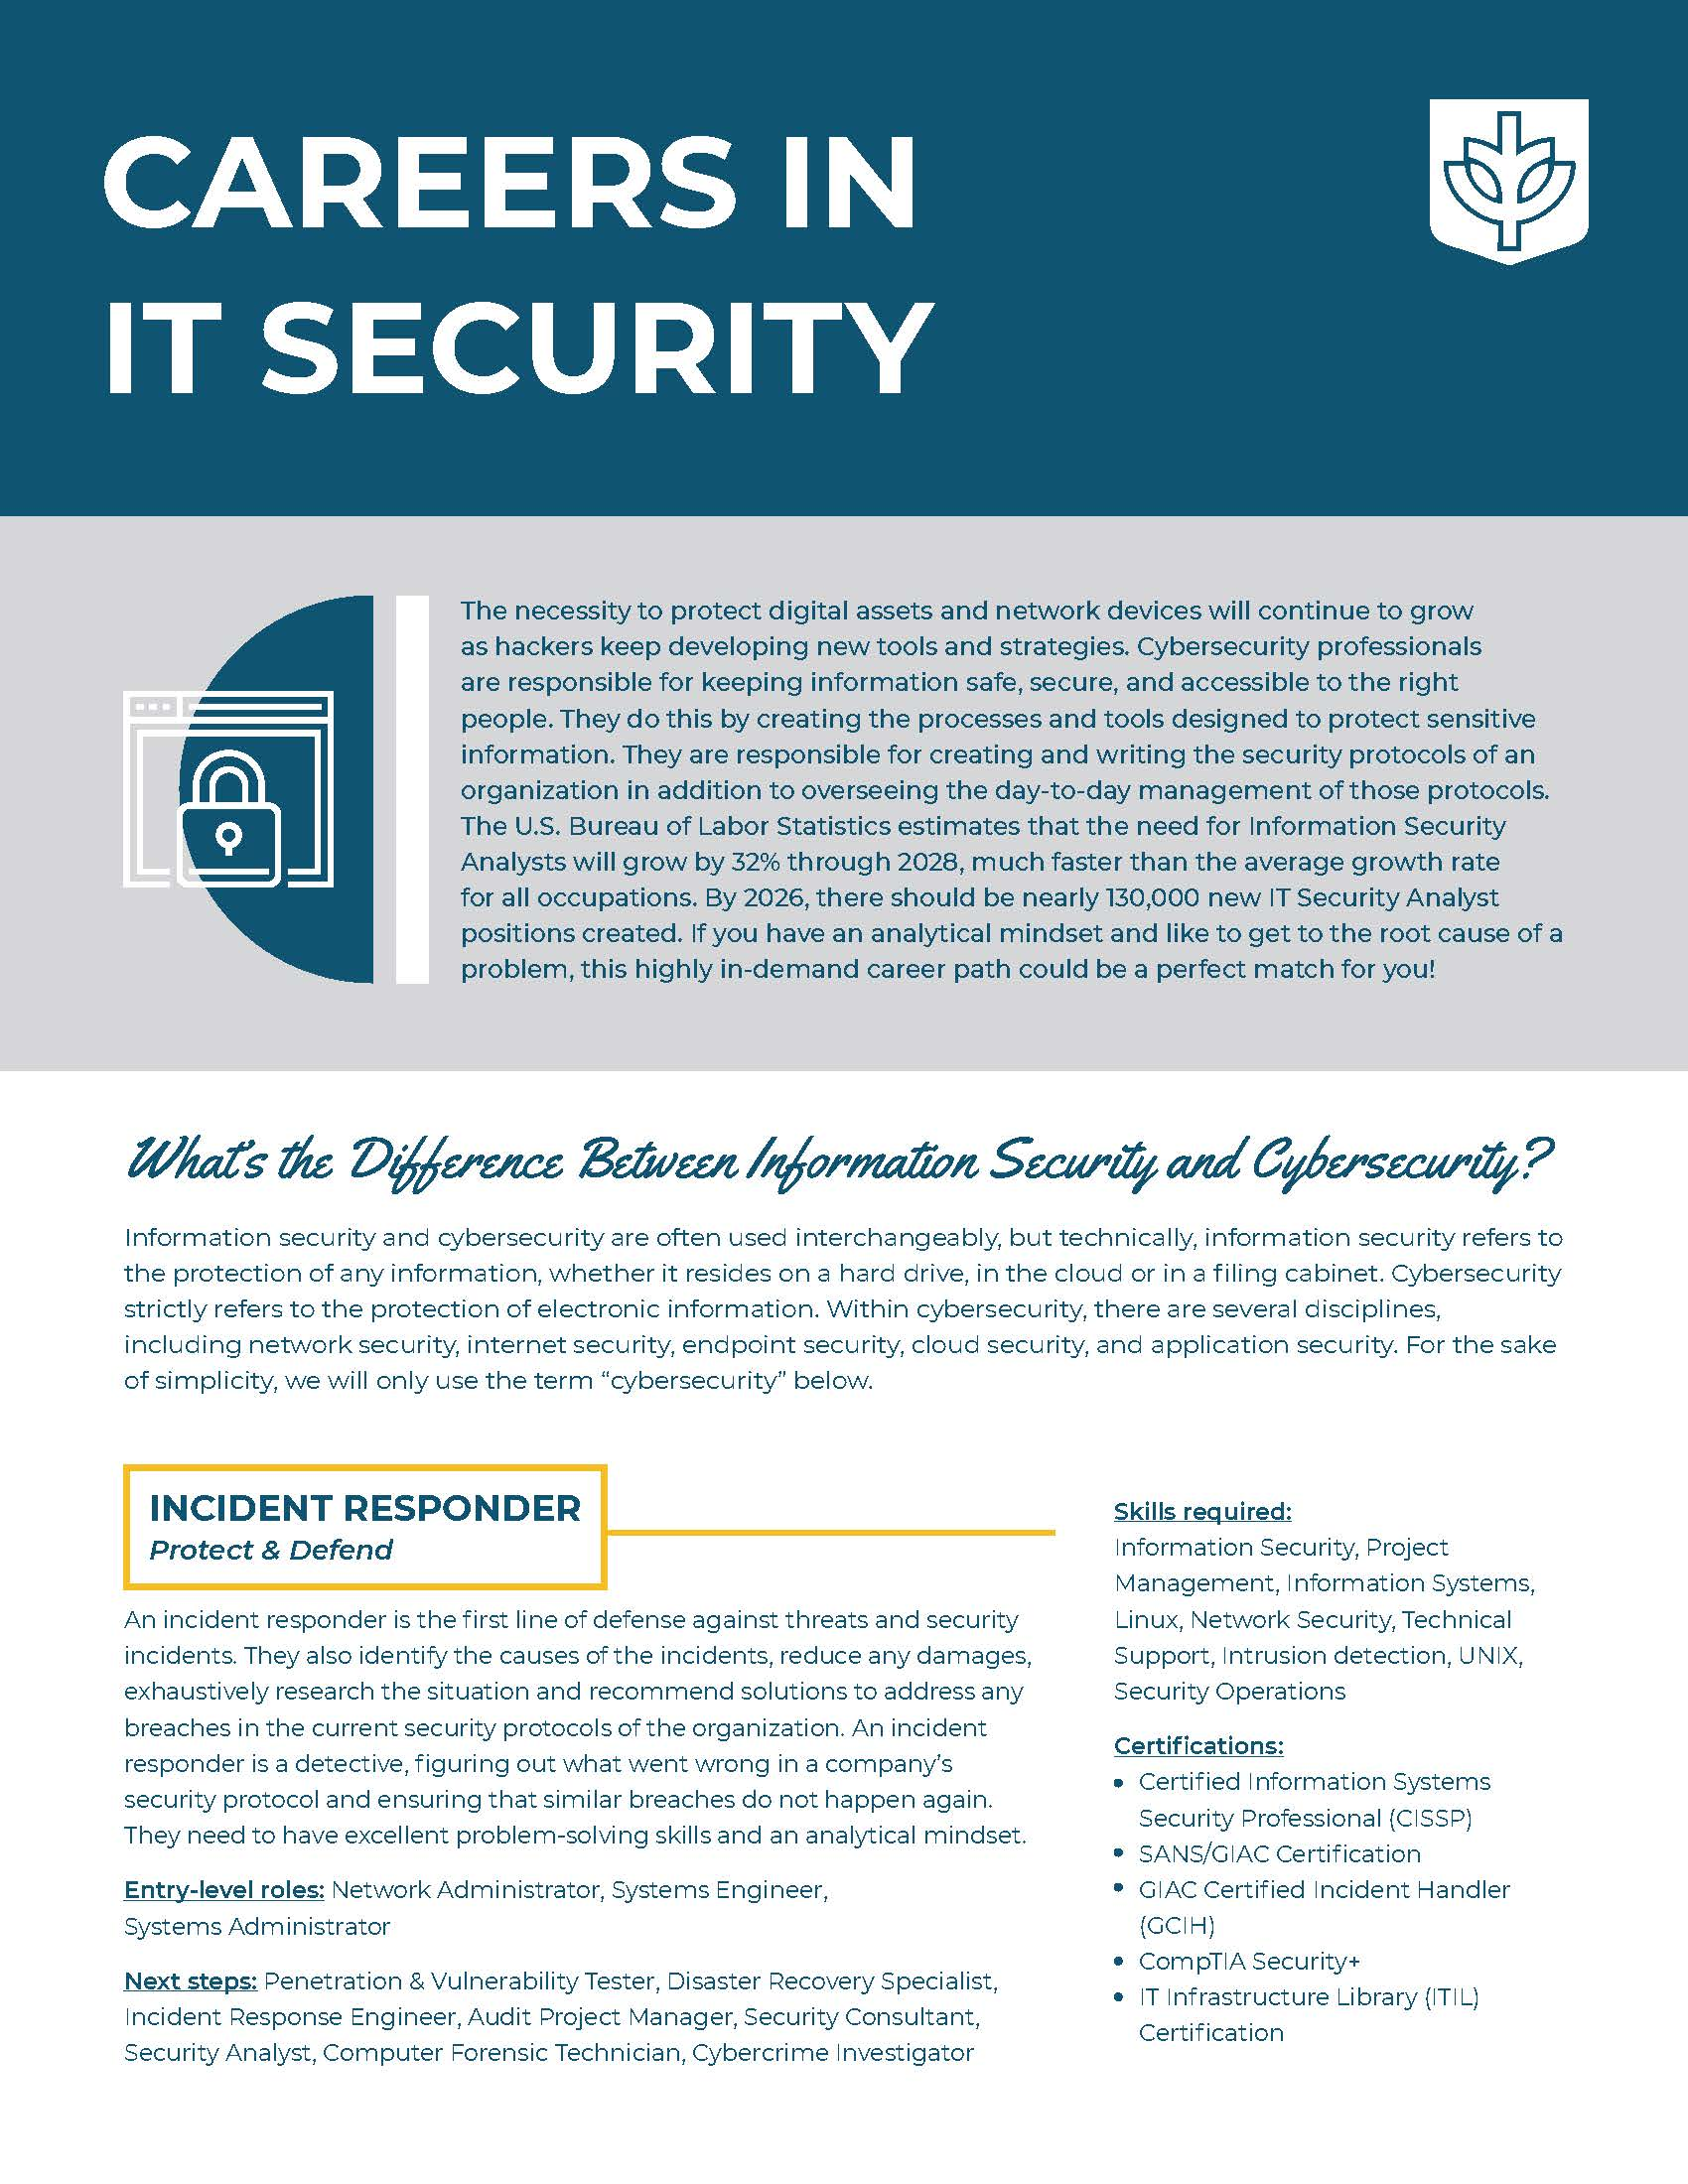 Careers in IT Security